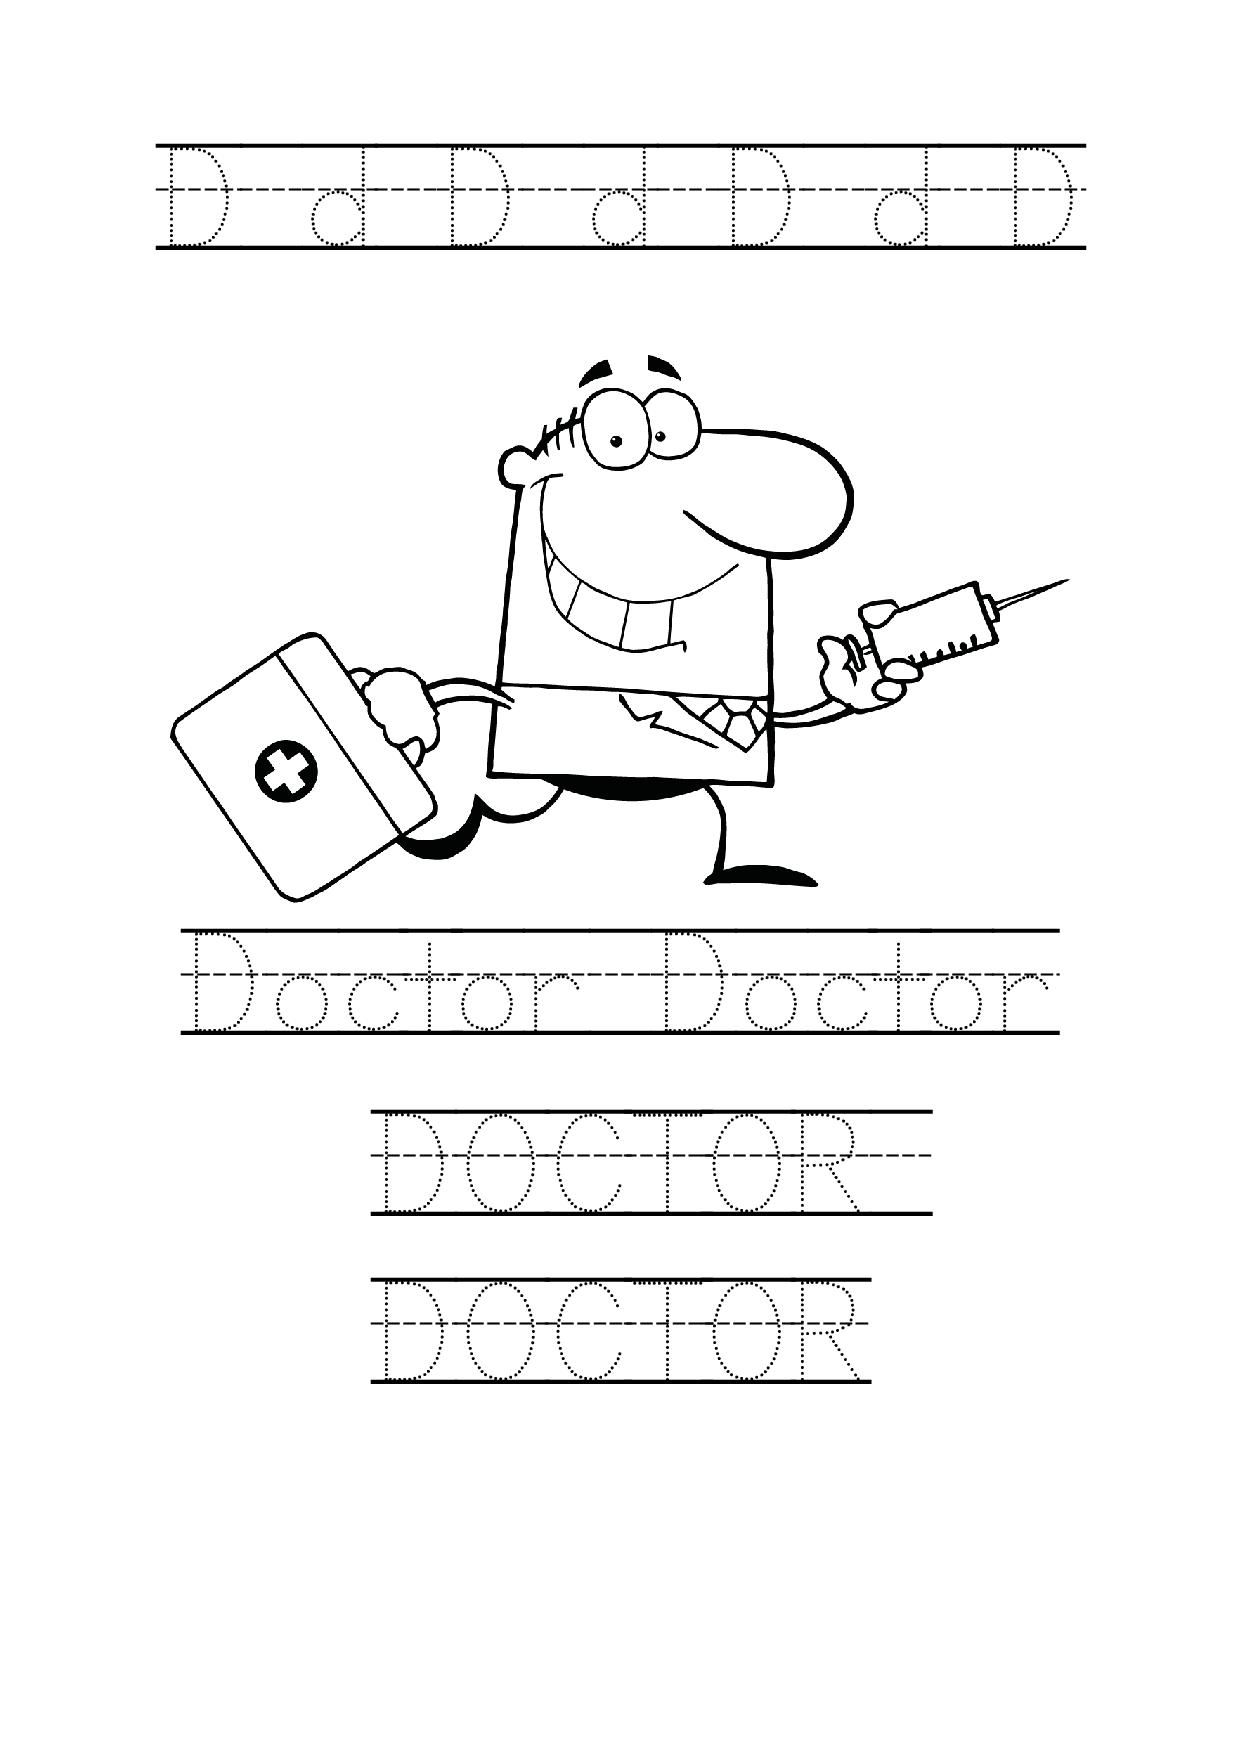 tracing word doctor worksheet coloring page for preschool | National ...